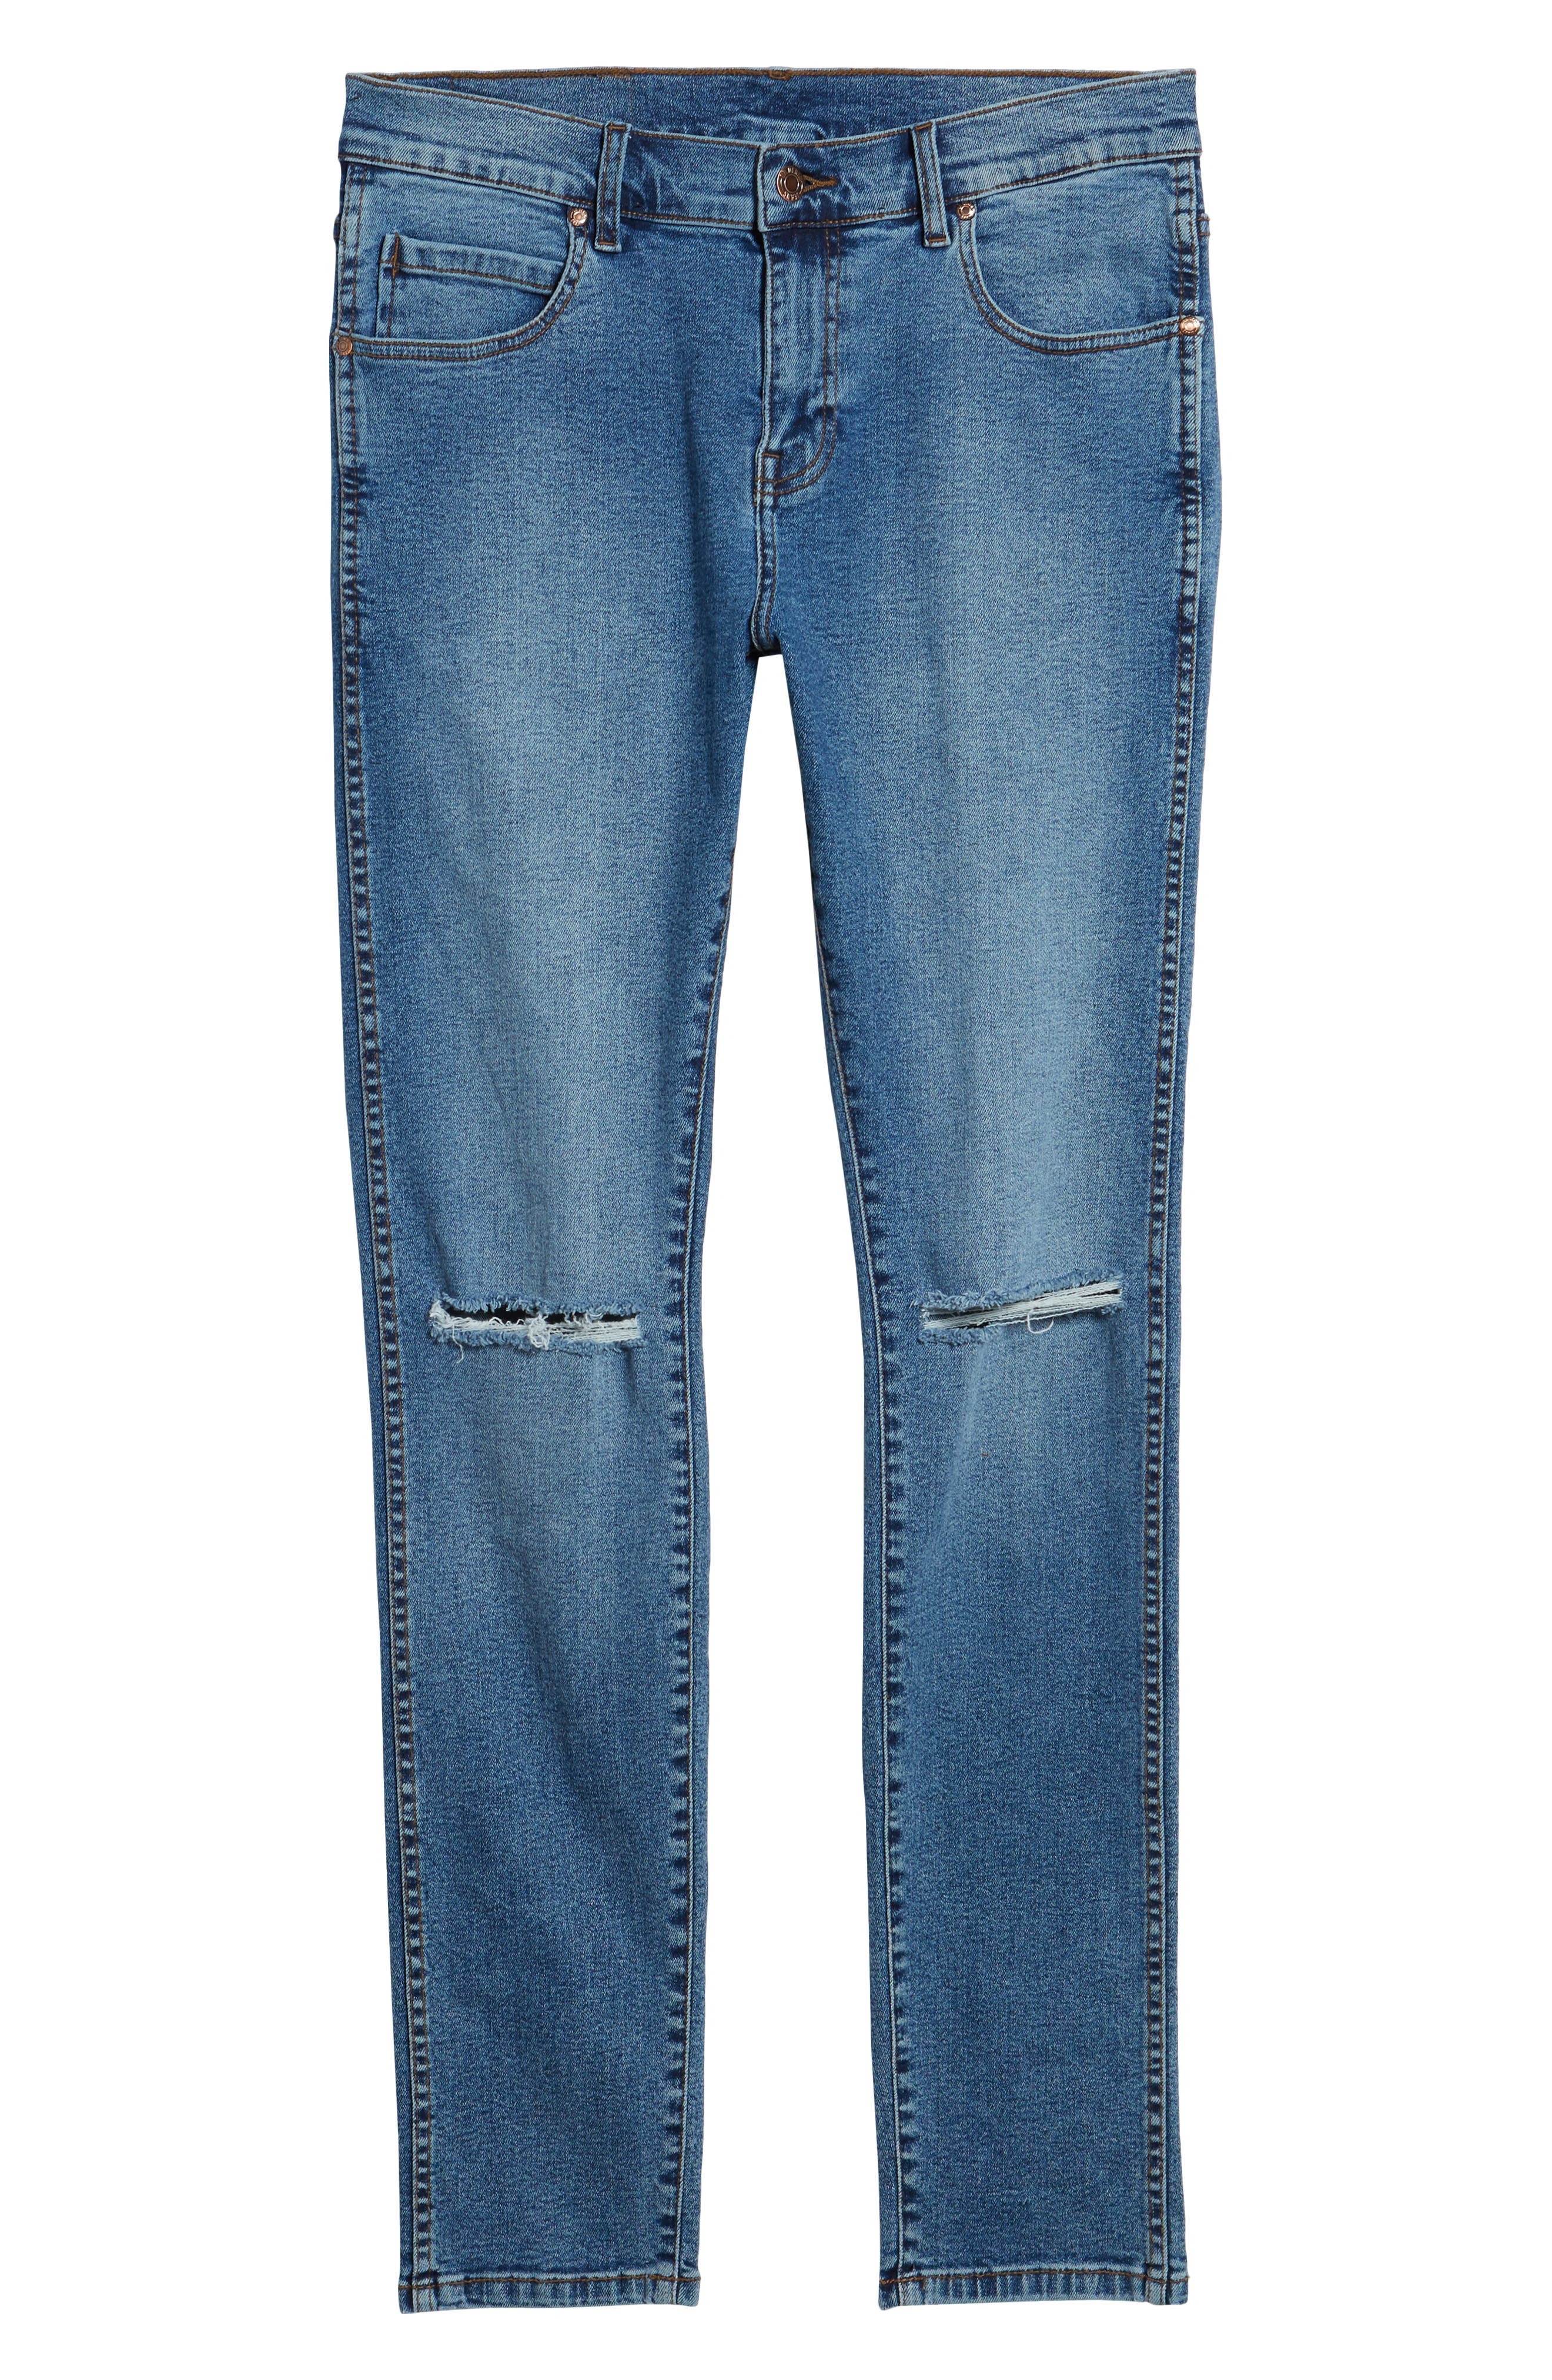 Snap Skinny Fit Jeans,                             Alternate thumbnail 6, color,                             Light Stone Destroyed